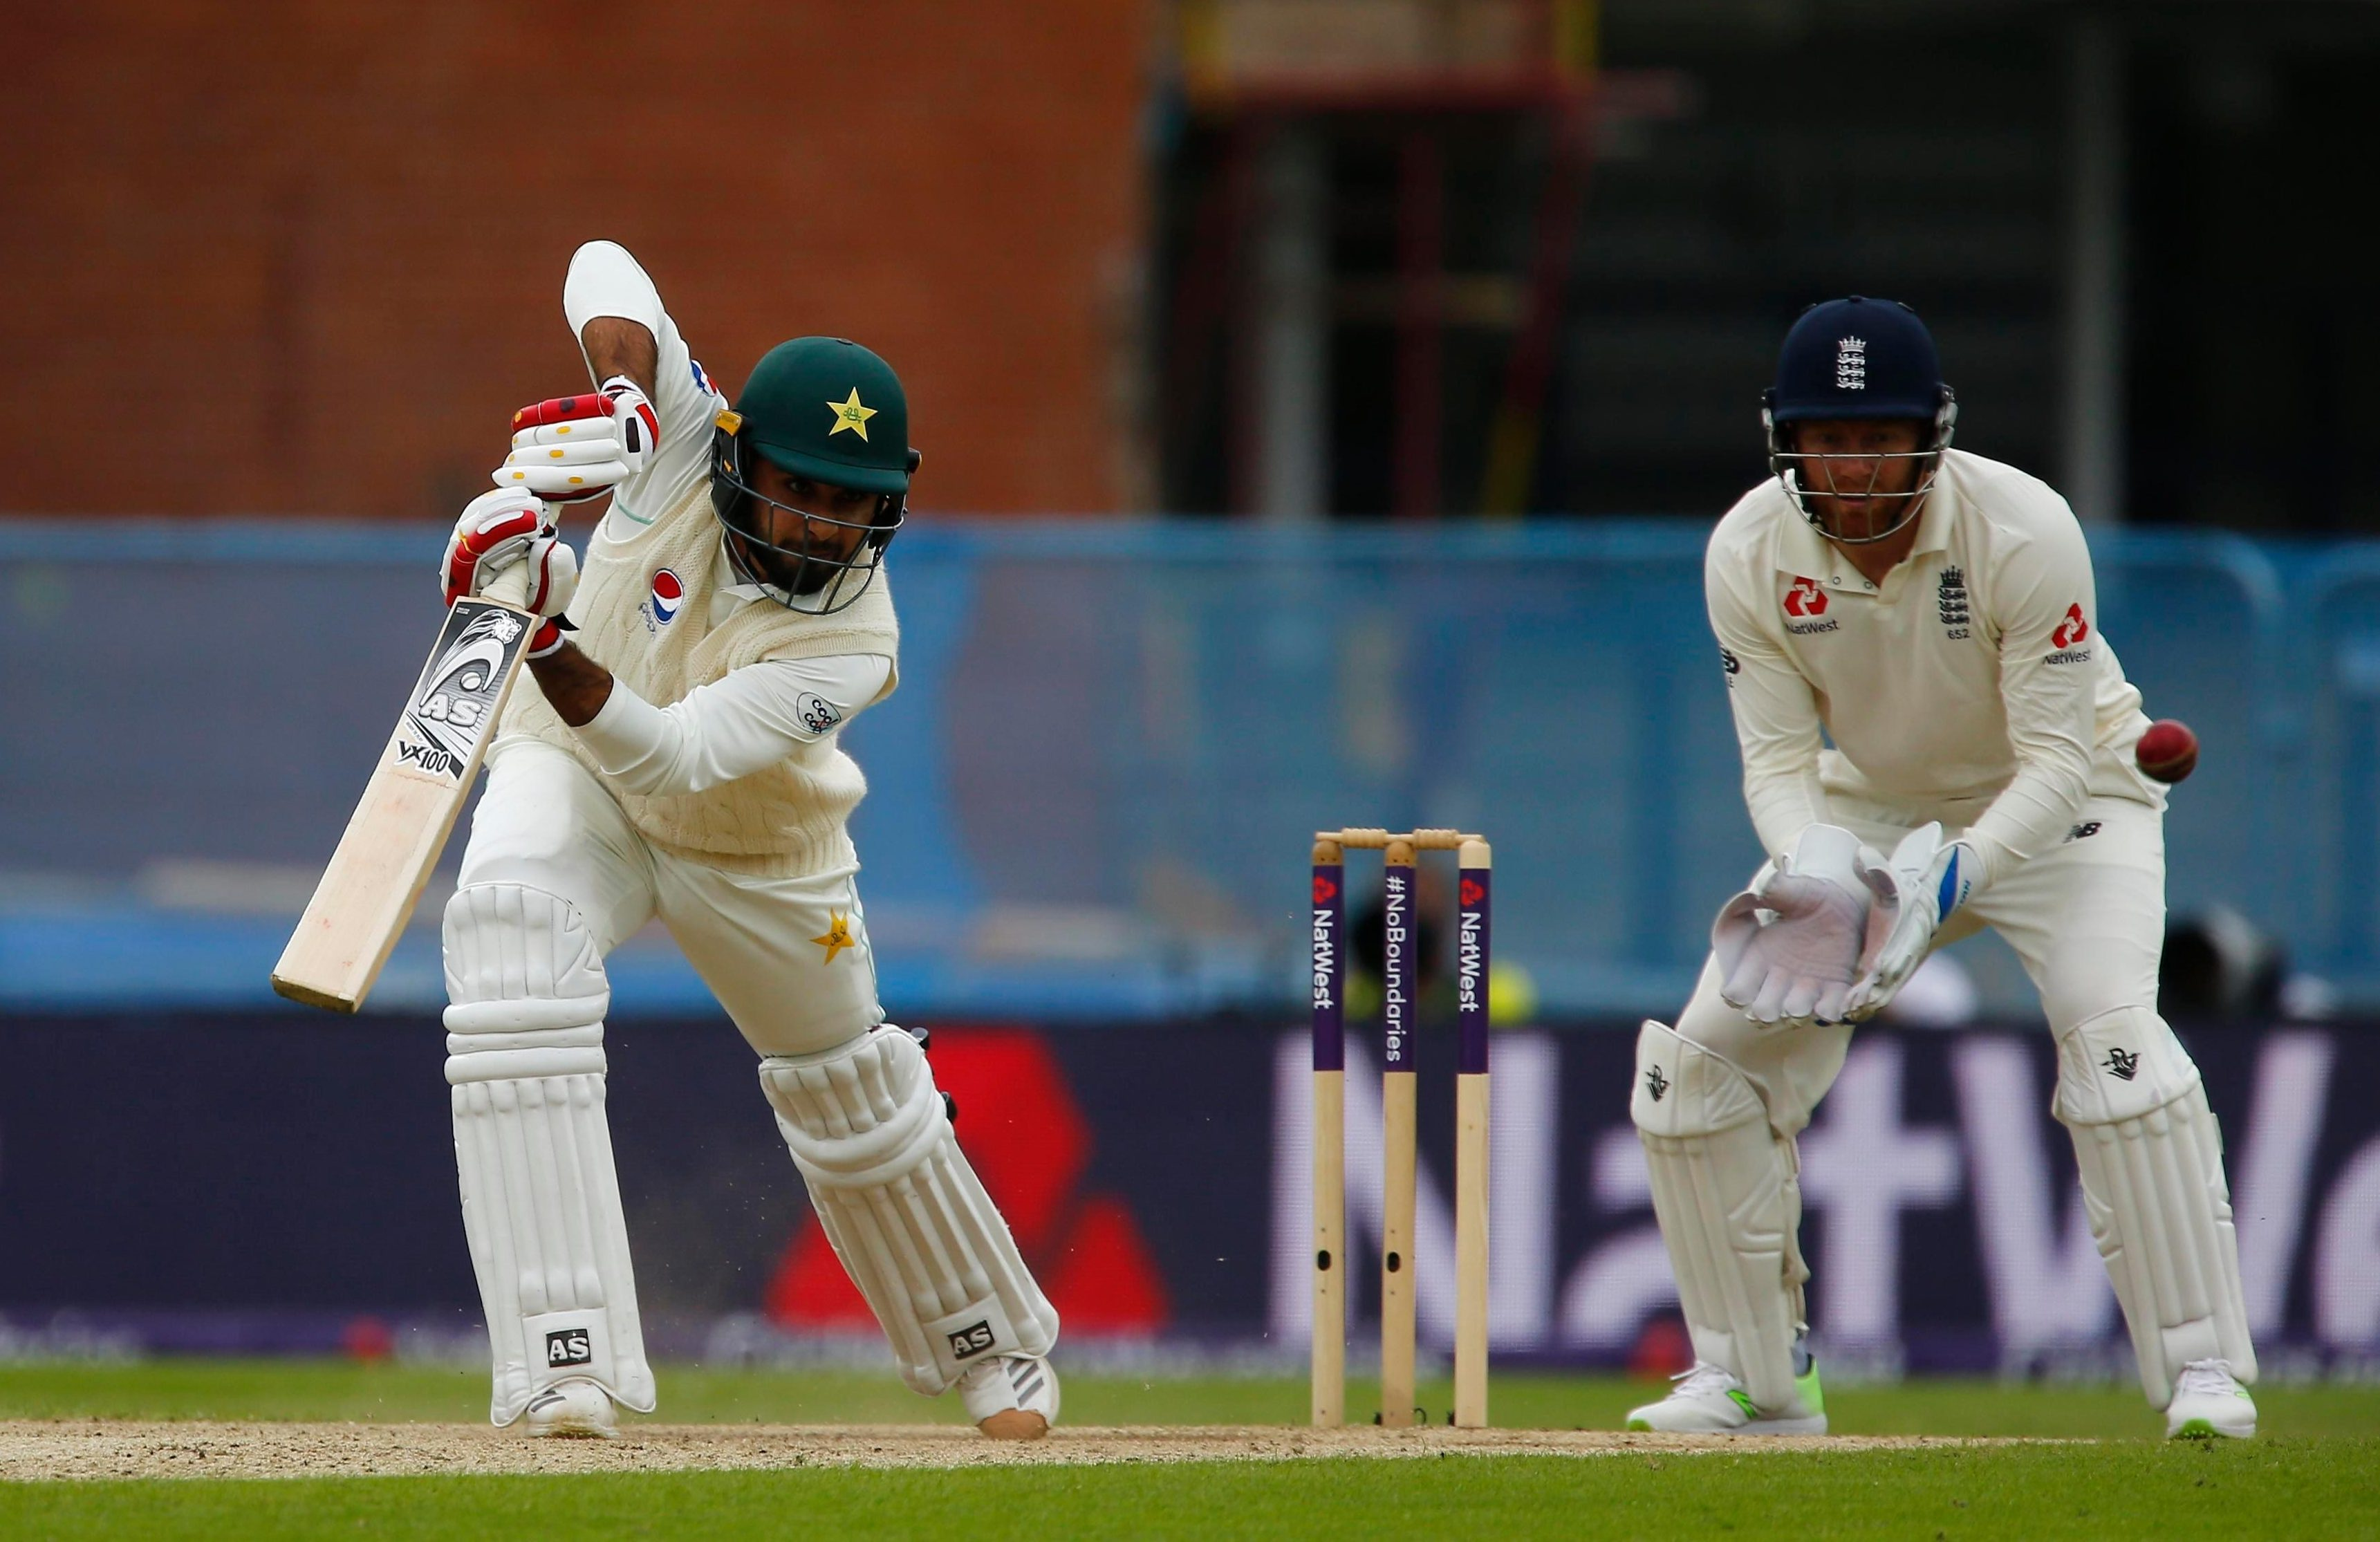 Pakistan drew 1-1 with England in their two-Test series and also beat Ireland in May